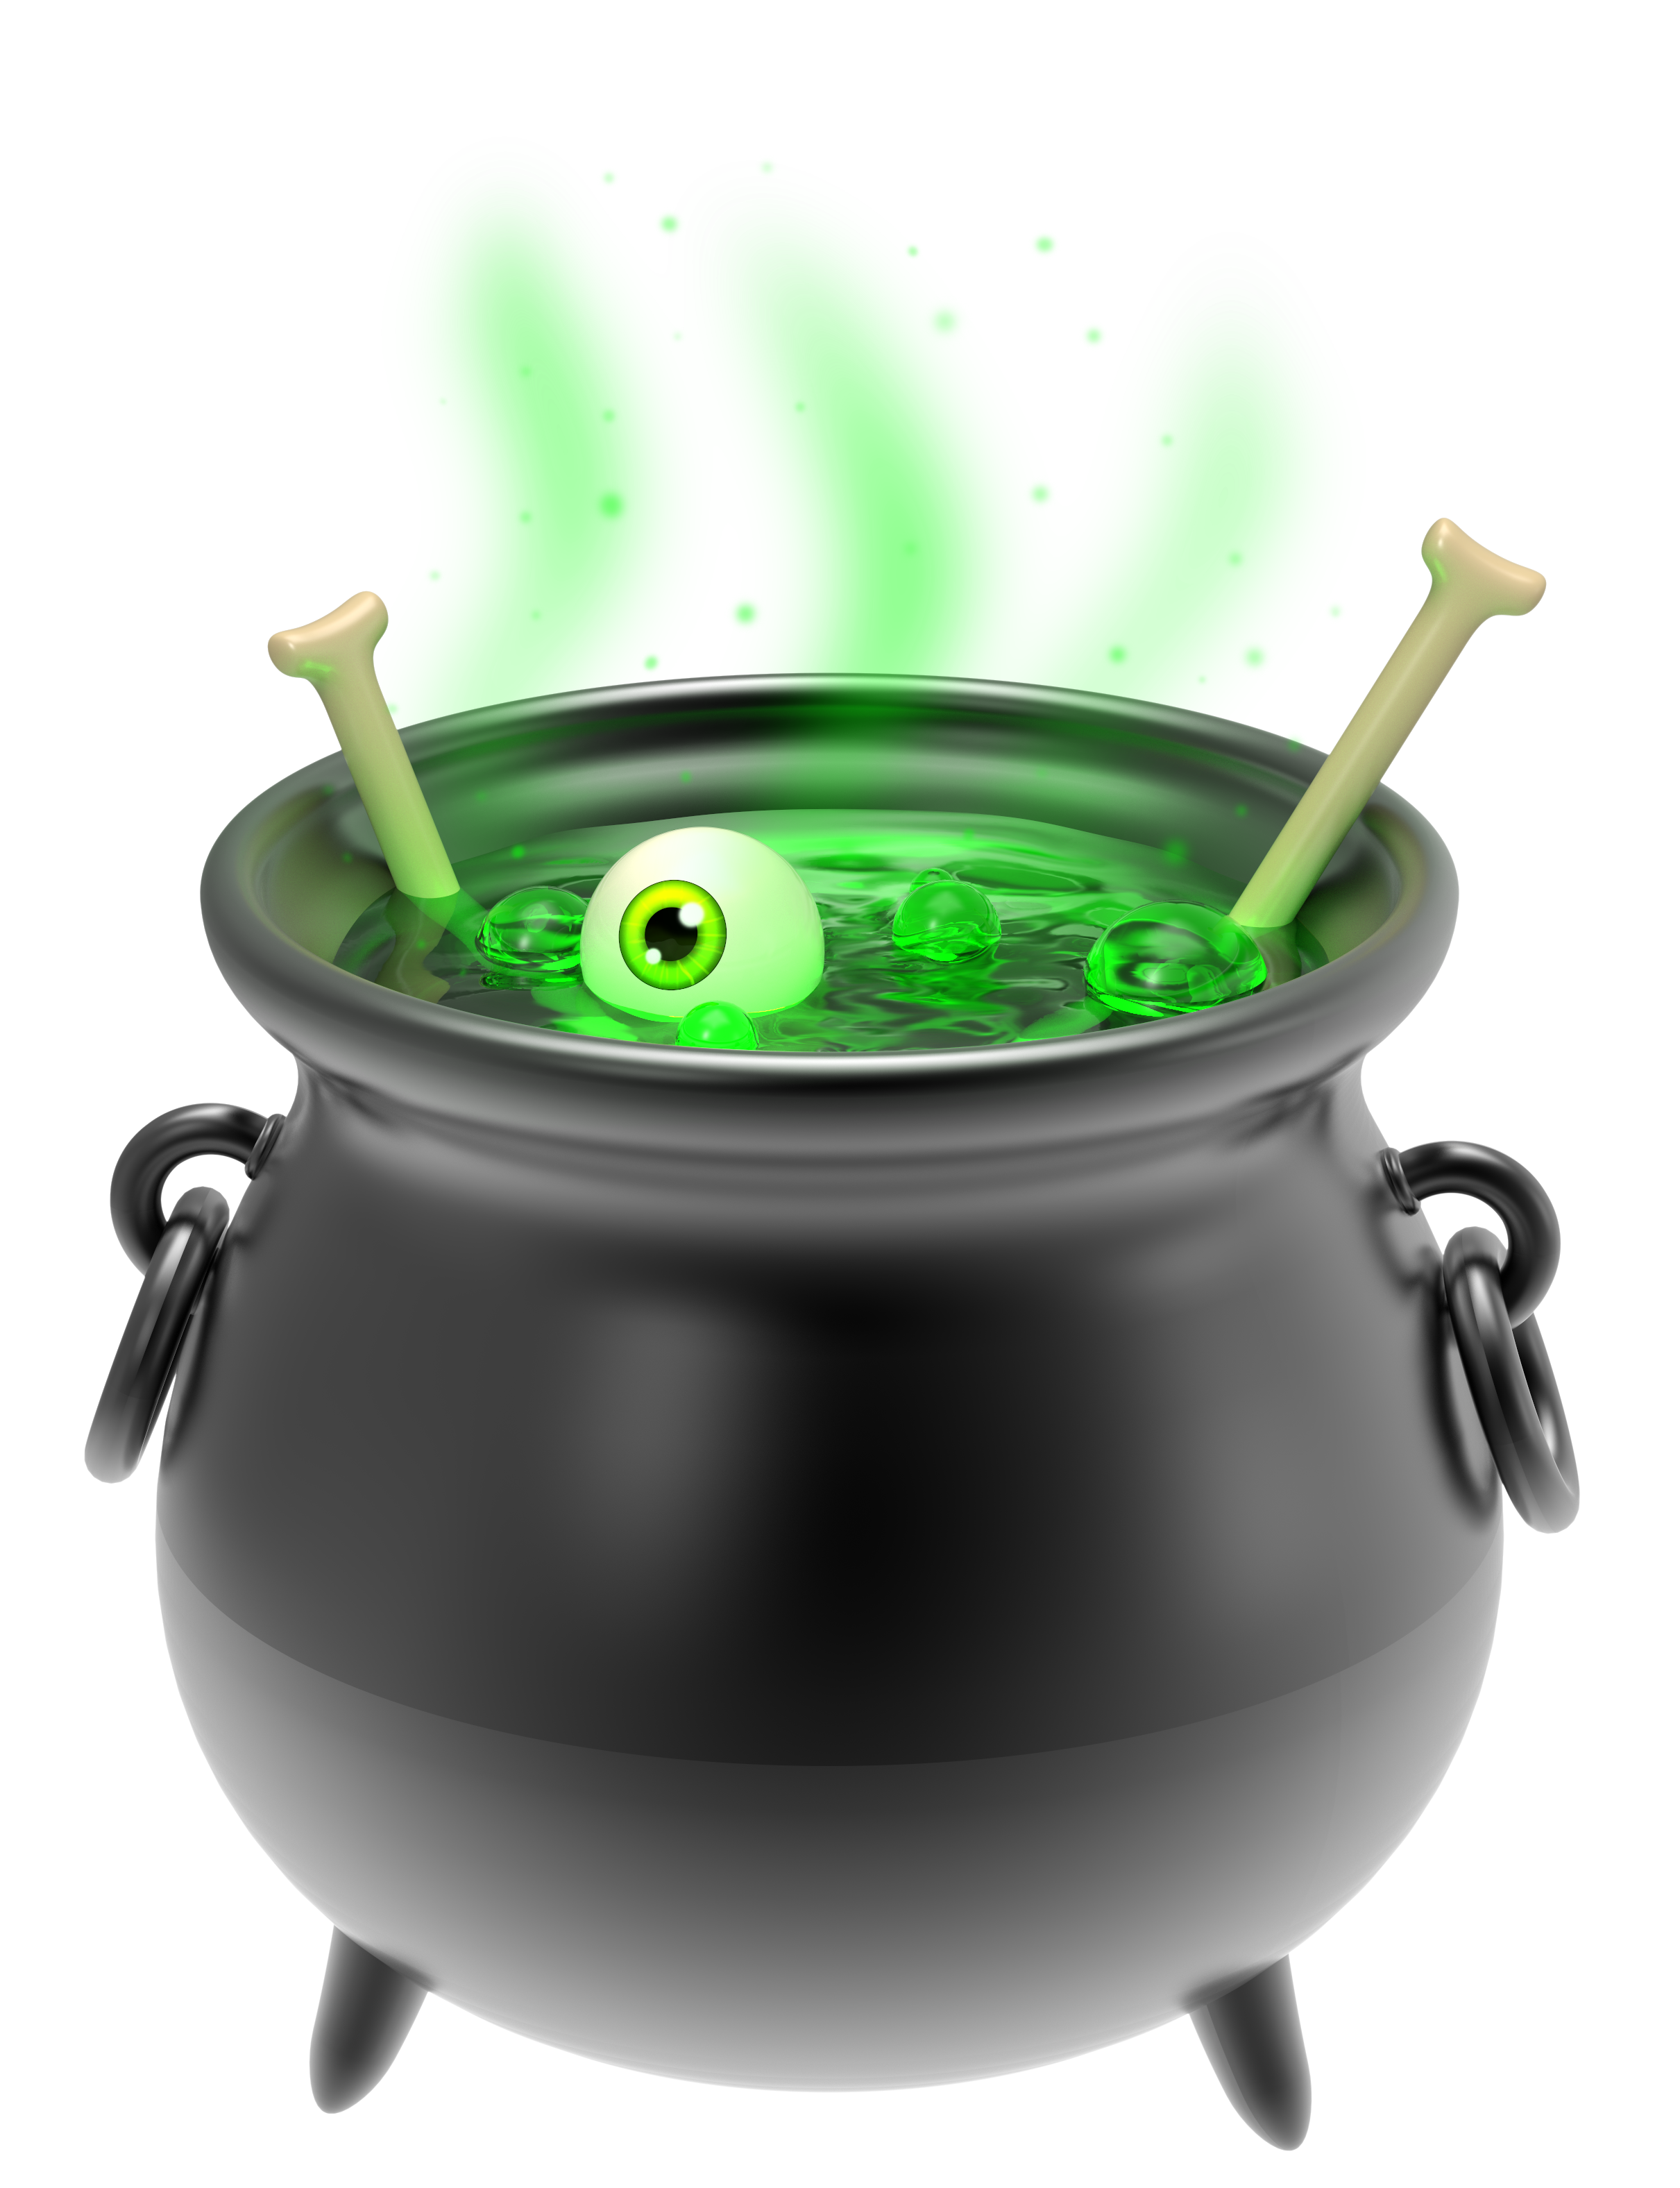 clip art freeuse library Free clipart witches cauldron. Witch black png image.